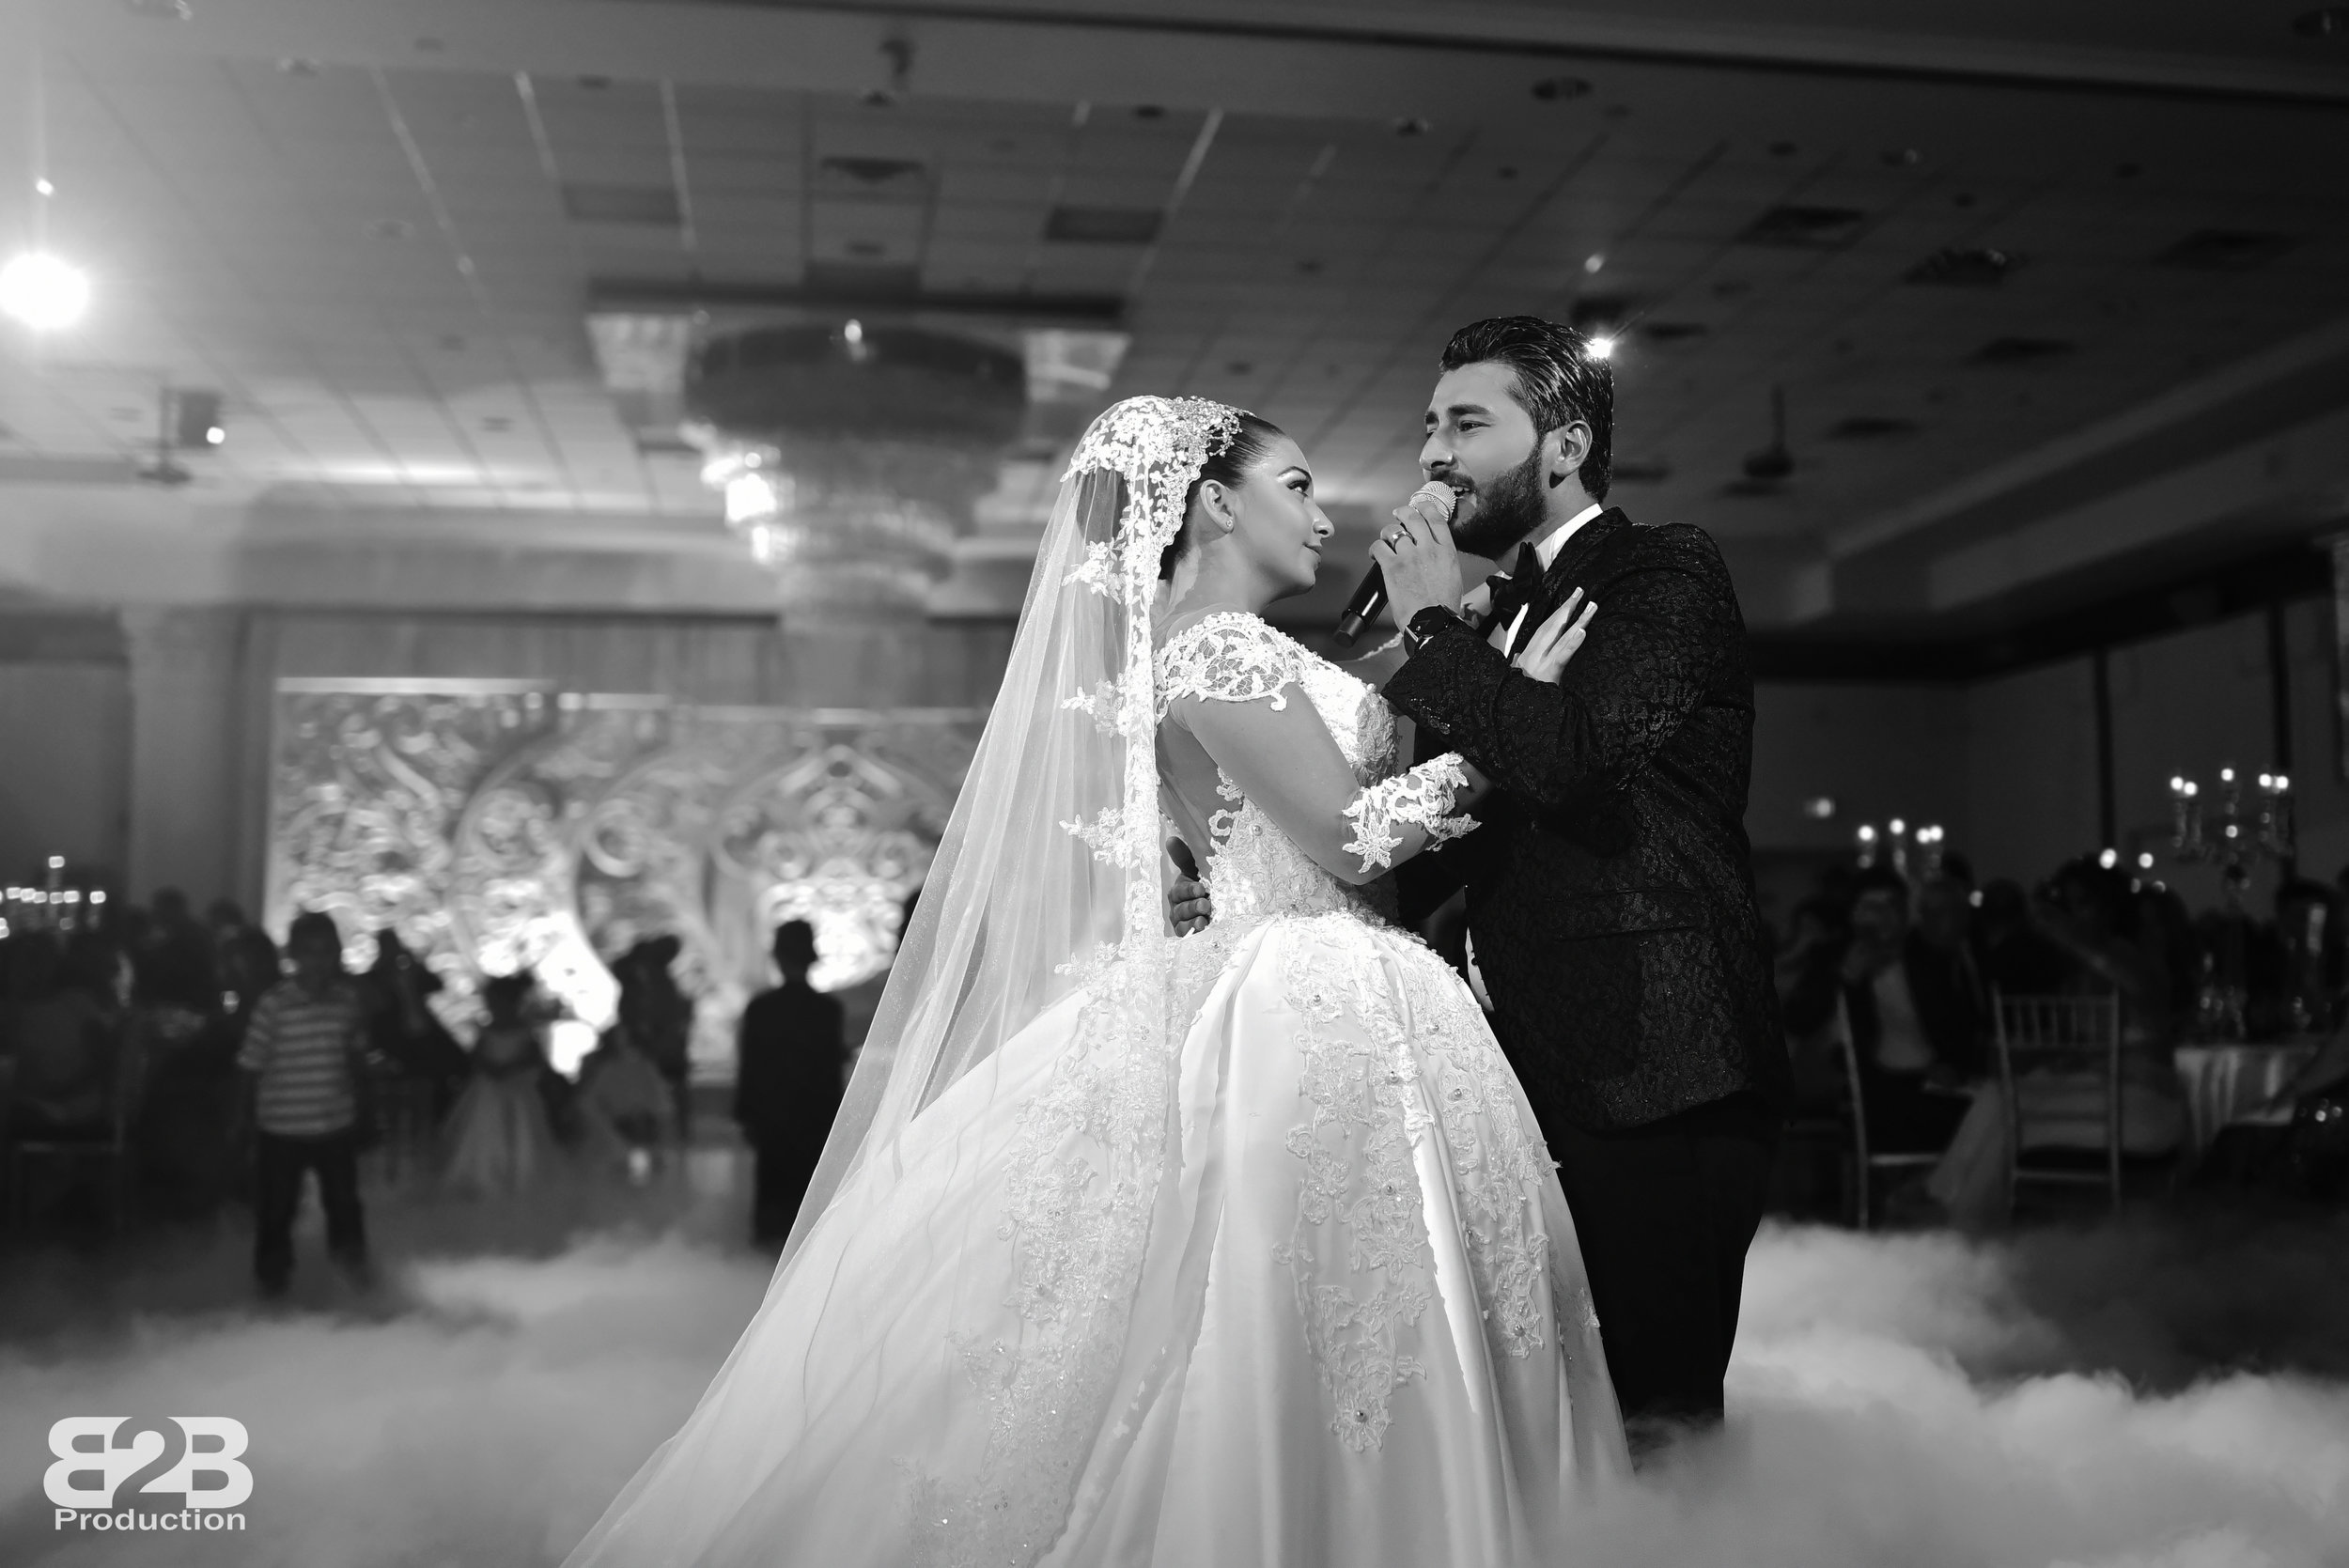 Samer & Melia - There are some weddings where you can't help but to feel wrapped around by the pure joy and love throughout the day. Samer & Melia wedding was one I had the opportunity to document their celebration of love. Not only that they are some of the most lovely people I've come to know, I was also overwhelmed by warmth of their family and friends.- Aug 2016